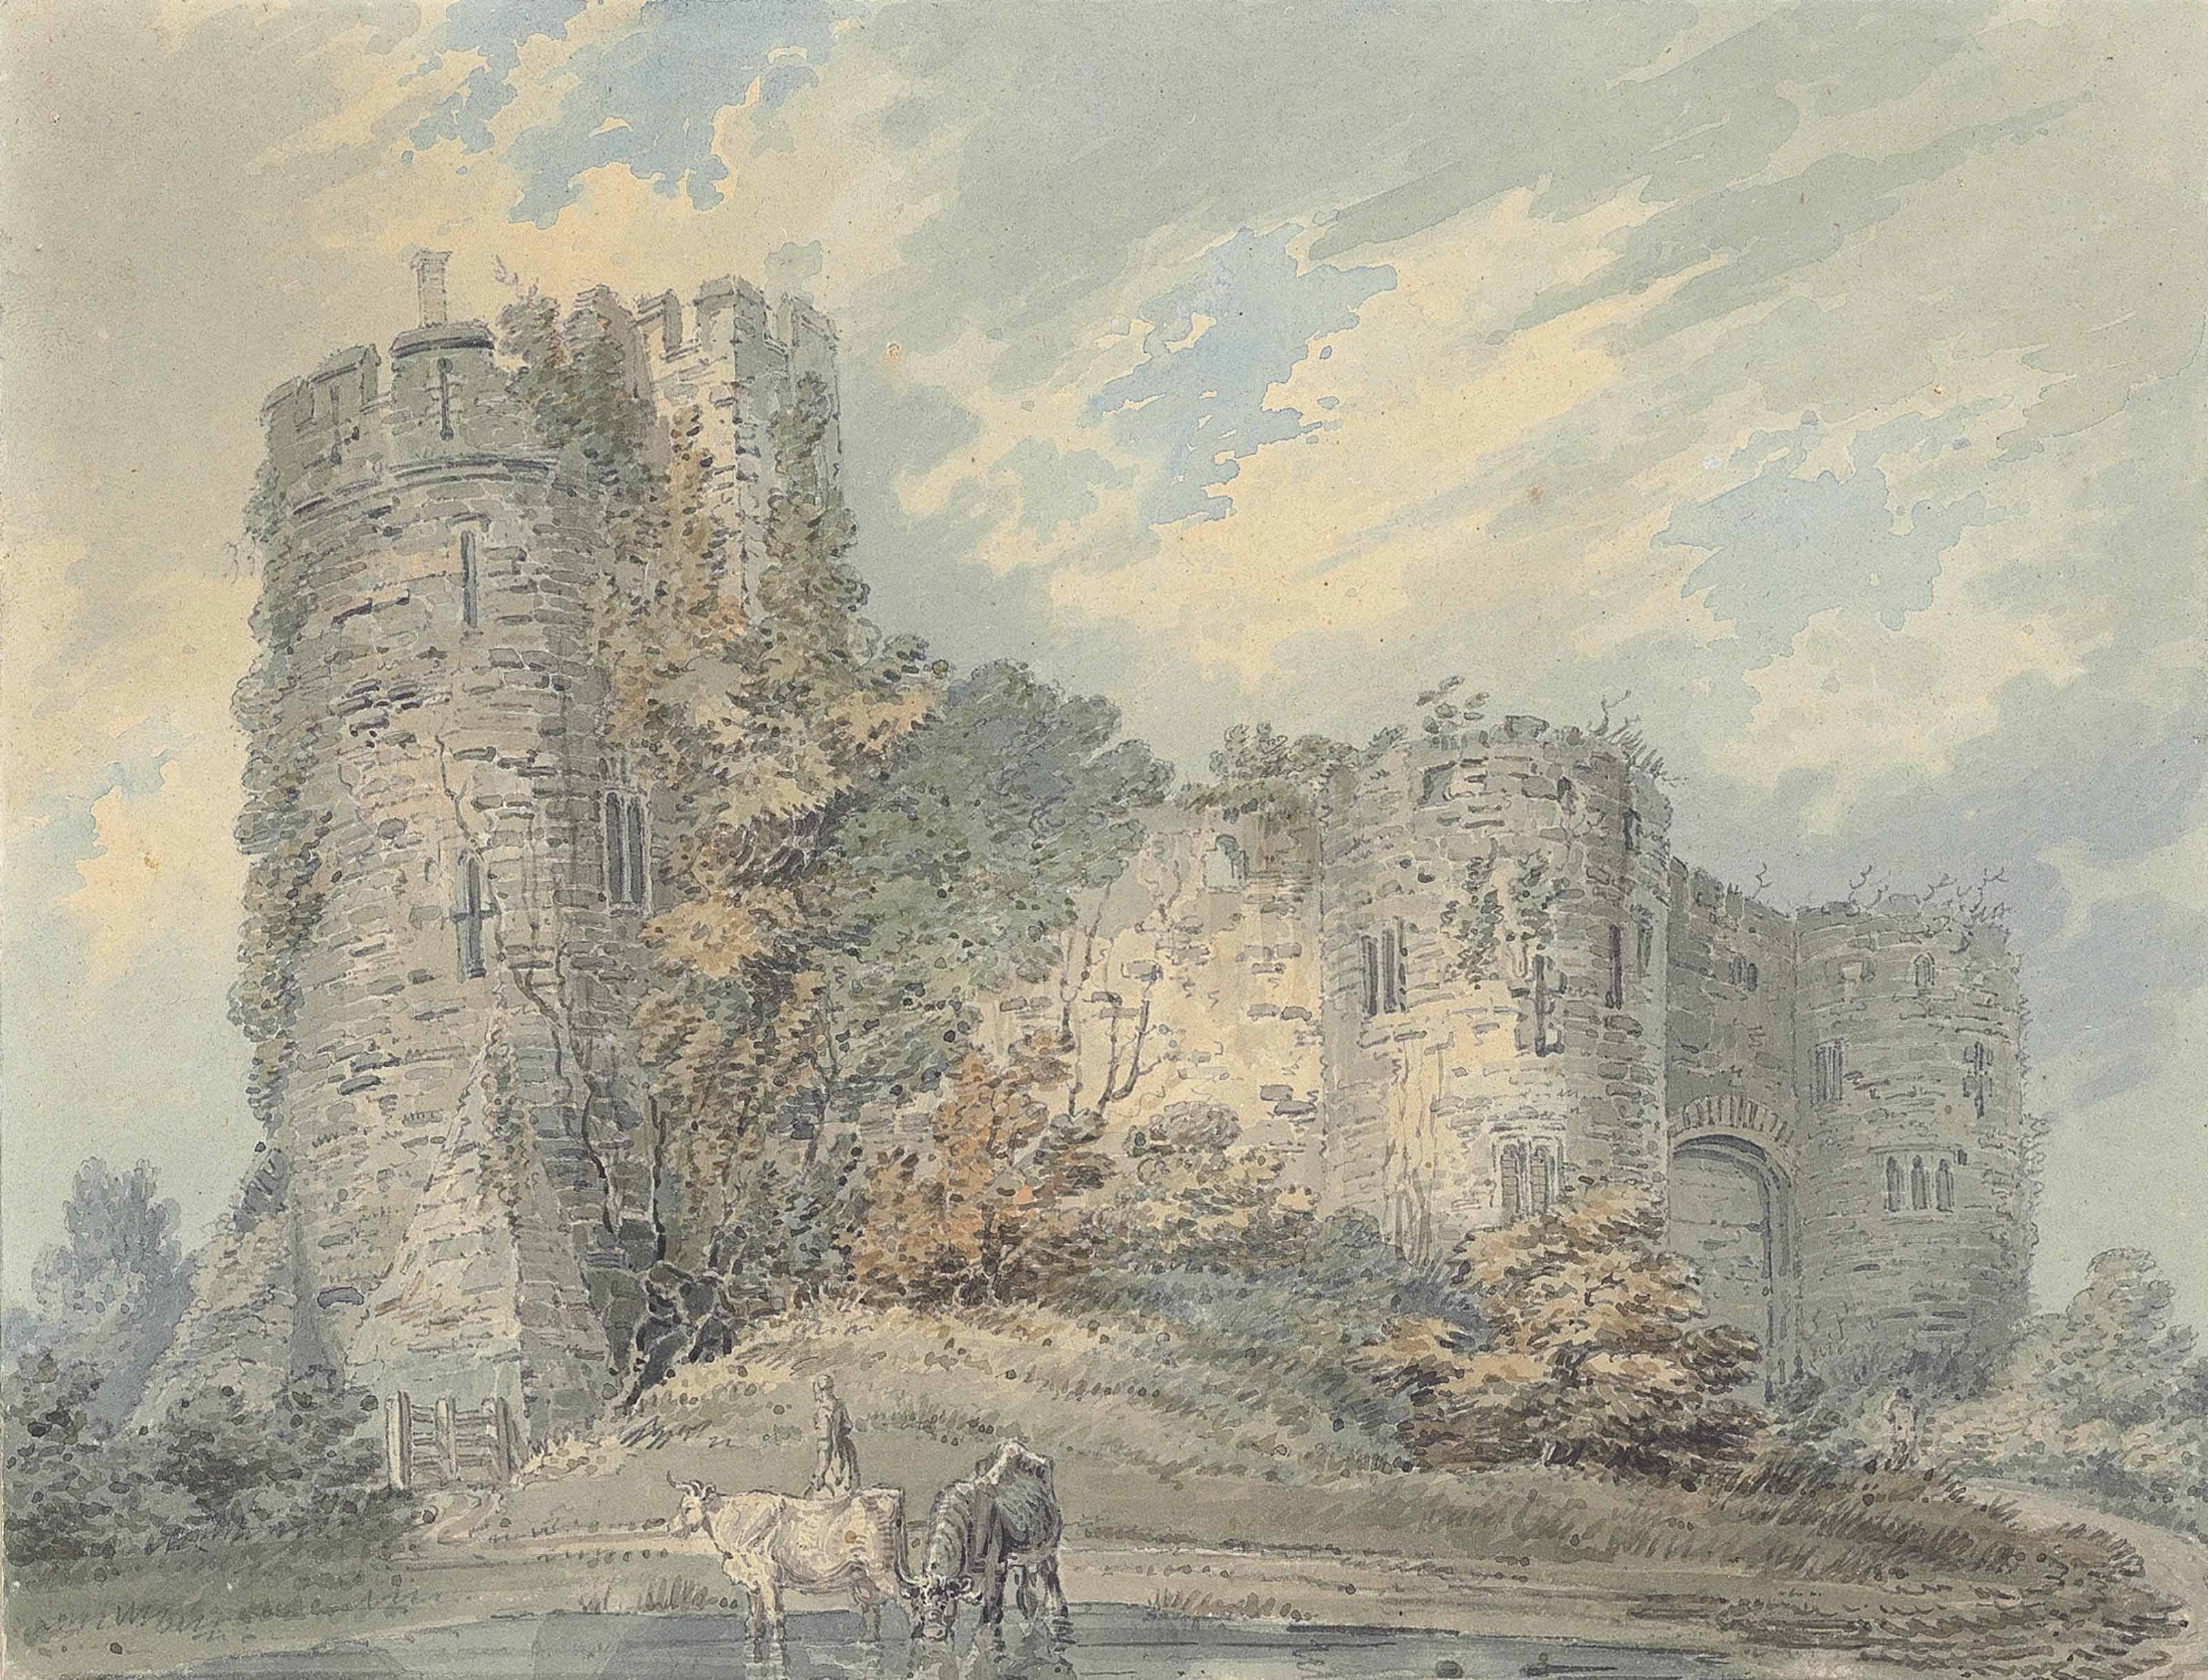 View of Chepstow Castle with cattle watering in the foreground